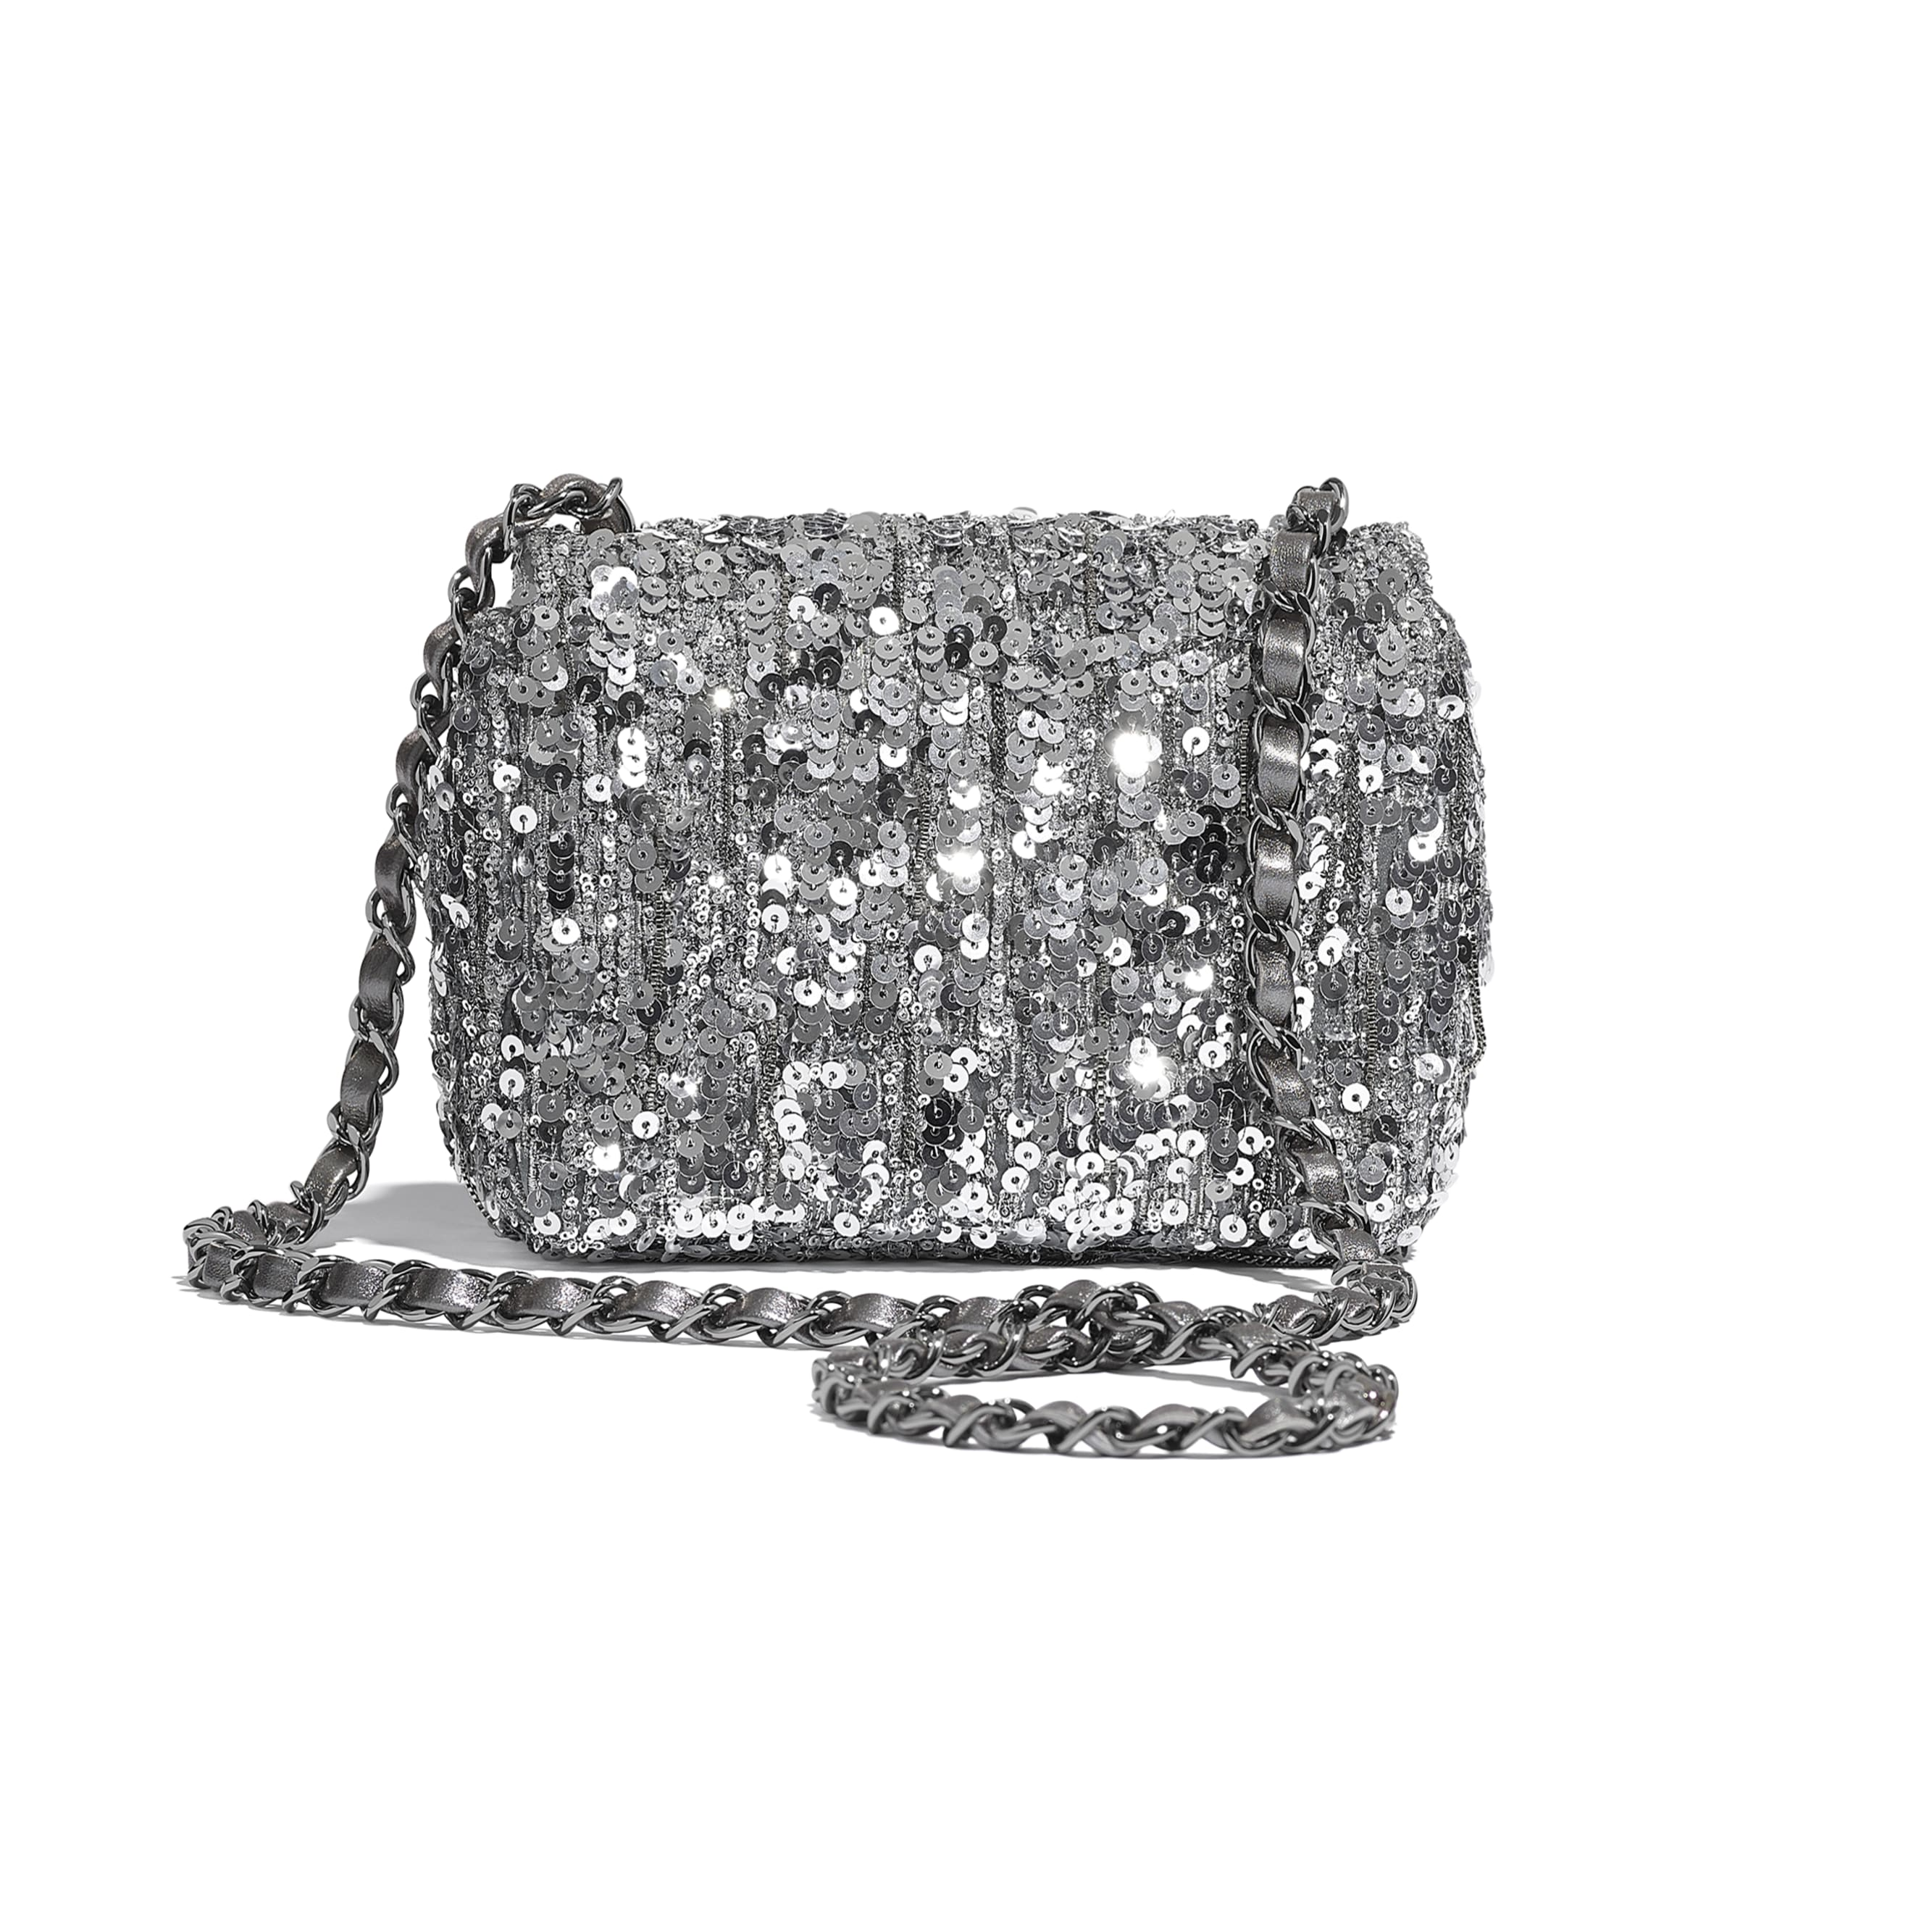 Mini Flap Bag - Silver - Sequins & Ruthenium-Finish Metal - CHANEL - Alternative view - see standard sized version